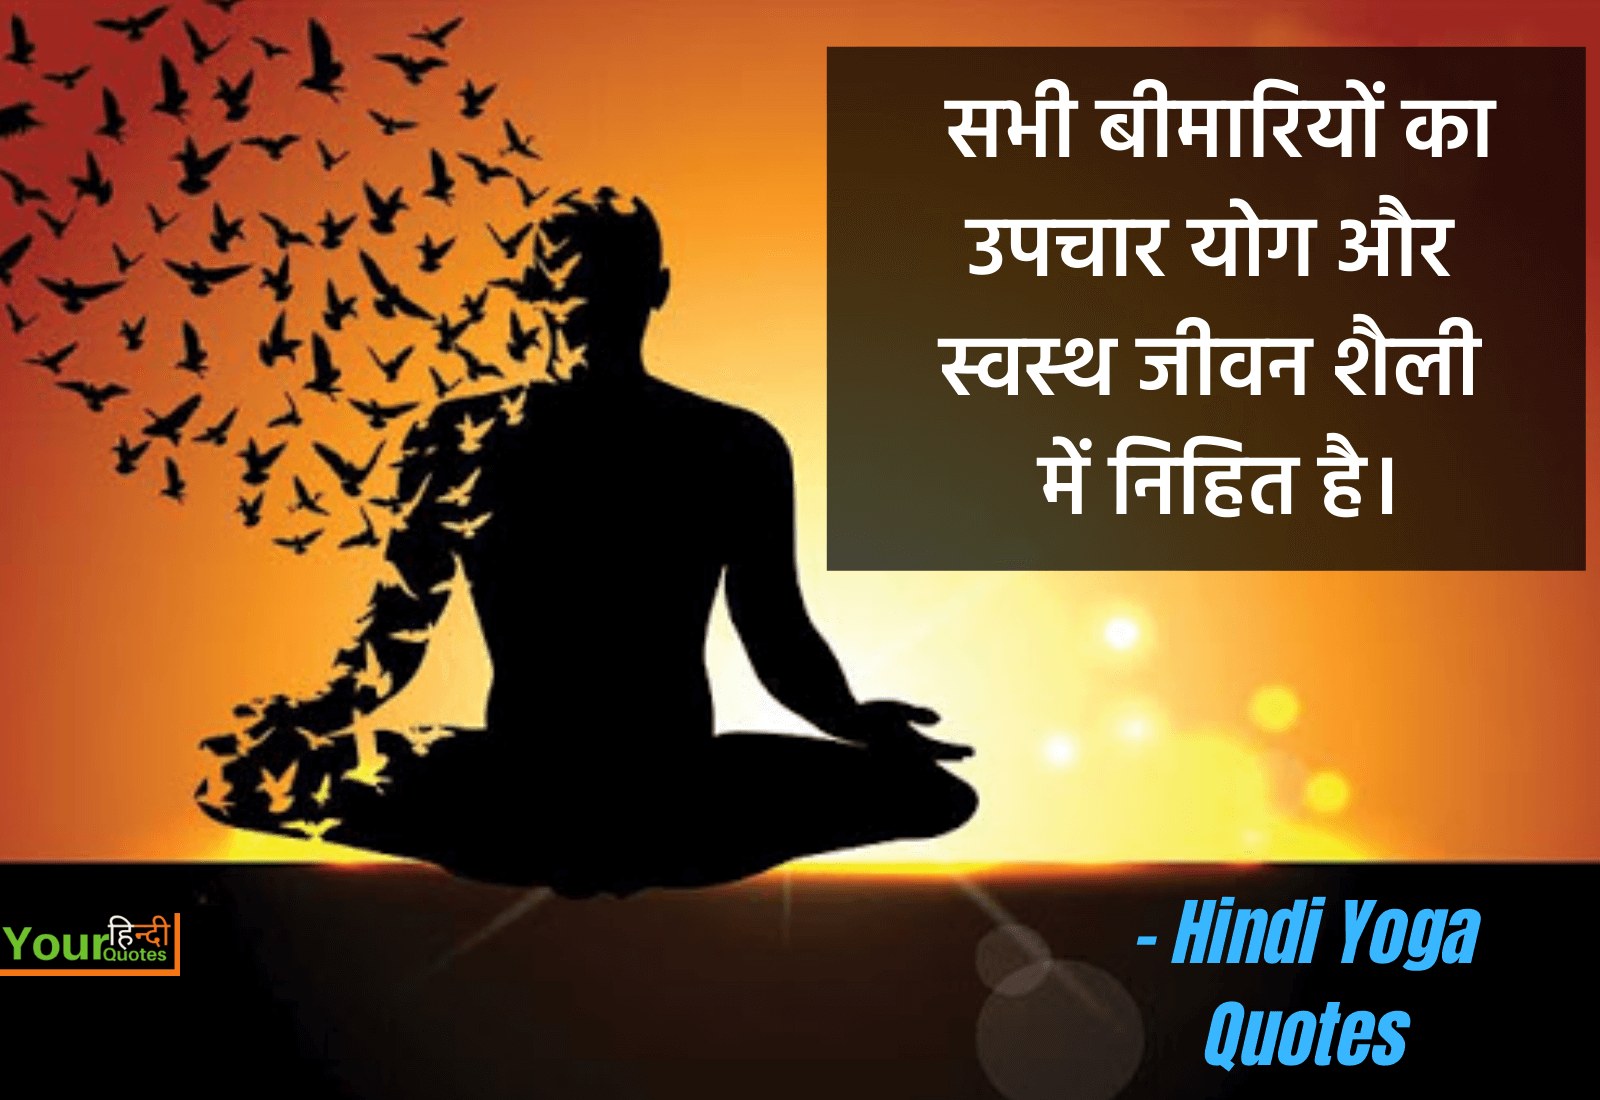 Hindi Yoga Quotes Images